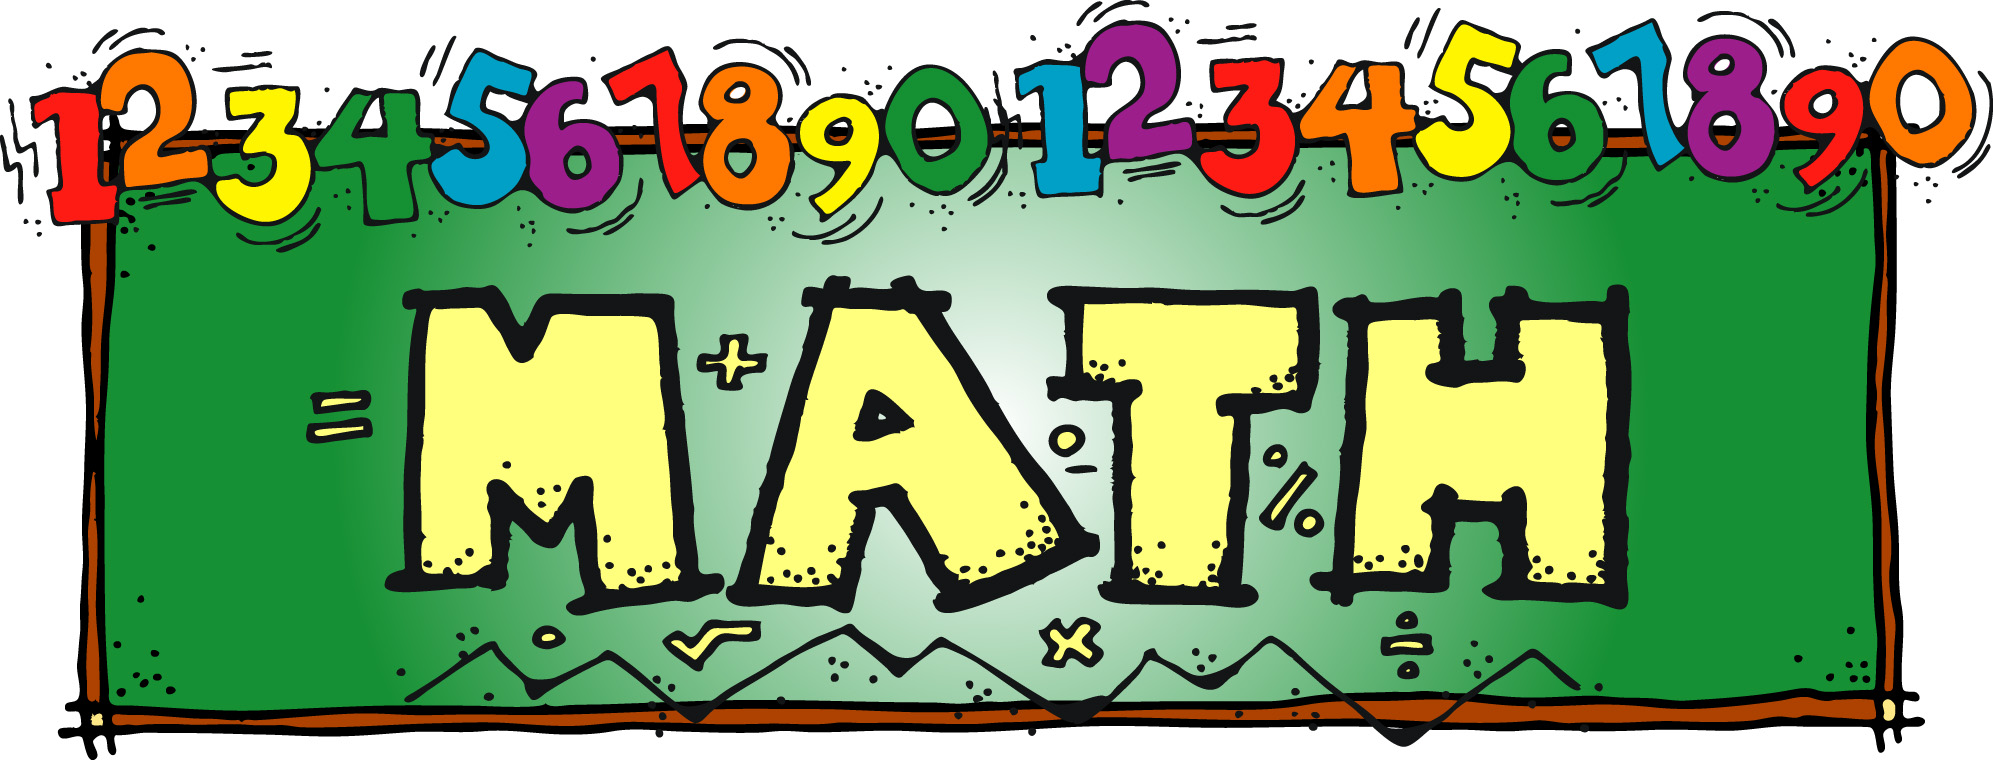 Clipart free math image royalty free download Free Maths Cliparts, Download Free Clip Art, Free Clip Art on ... image royalty free download